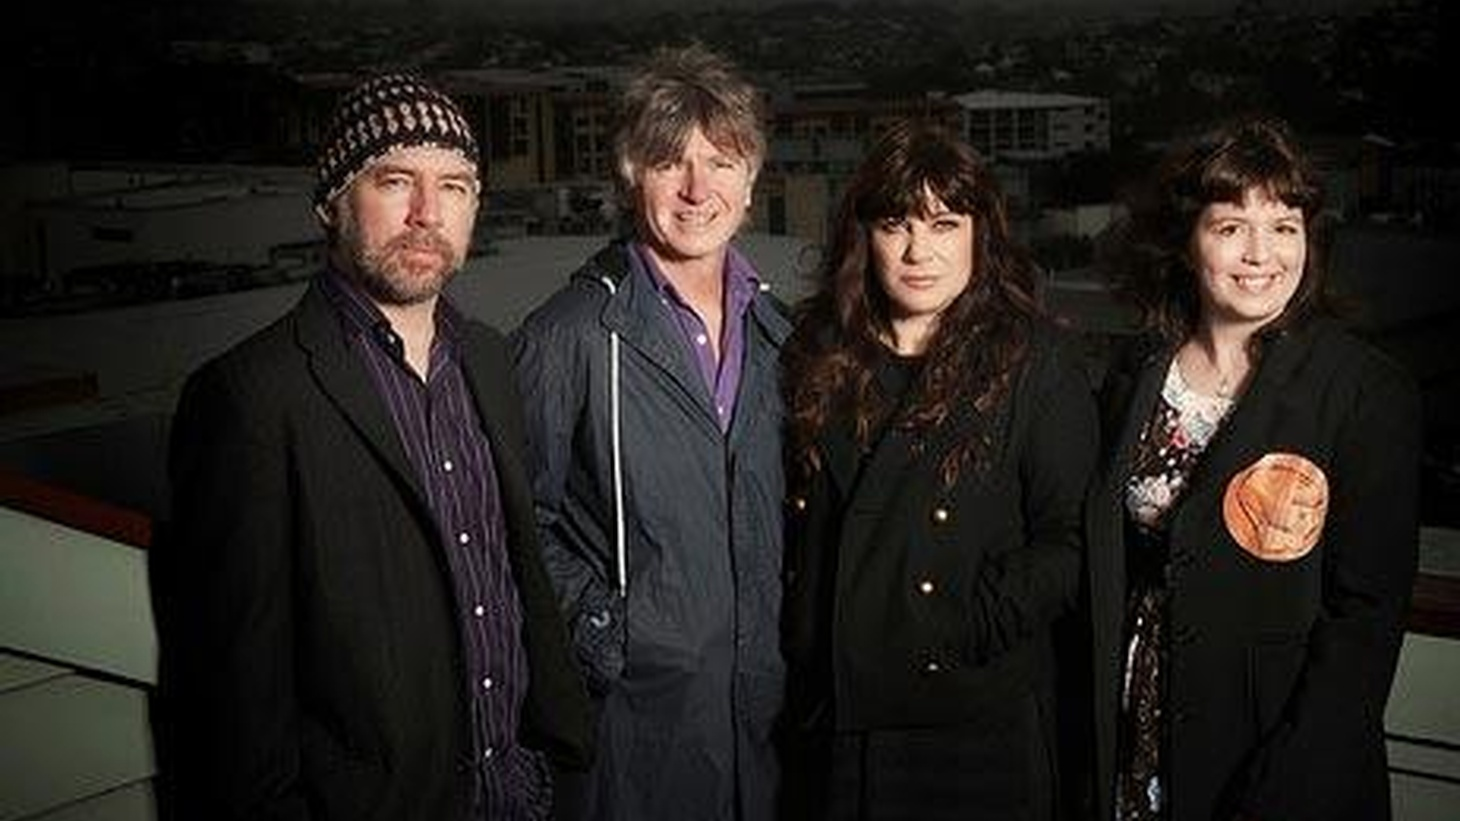 Crowded House front-man Neil Finn teamed up with his wife to form Pajama Club. Left with an empty nest, they found themselves with plenty of time, loads of instruments...